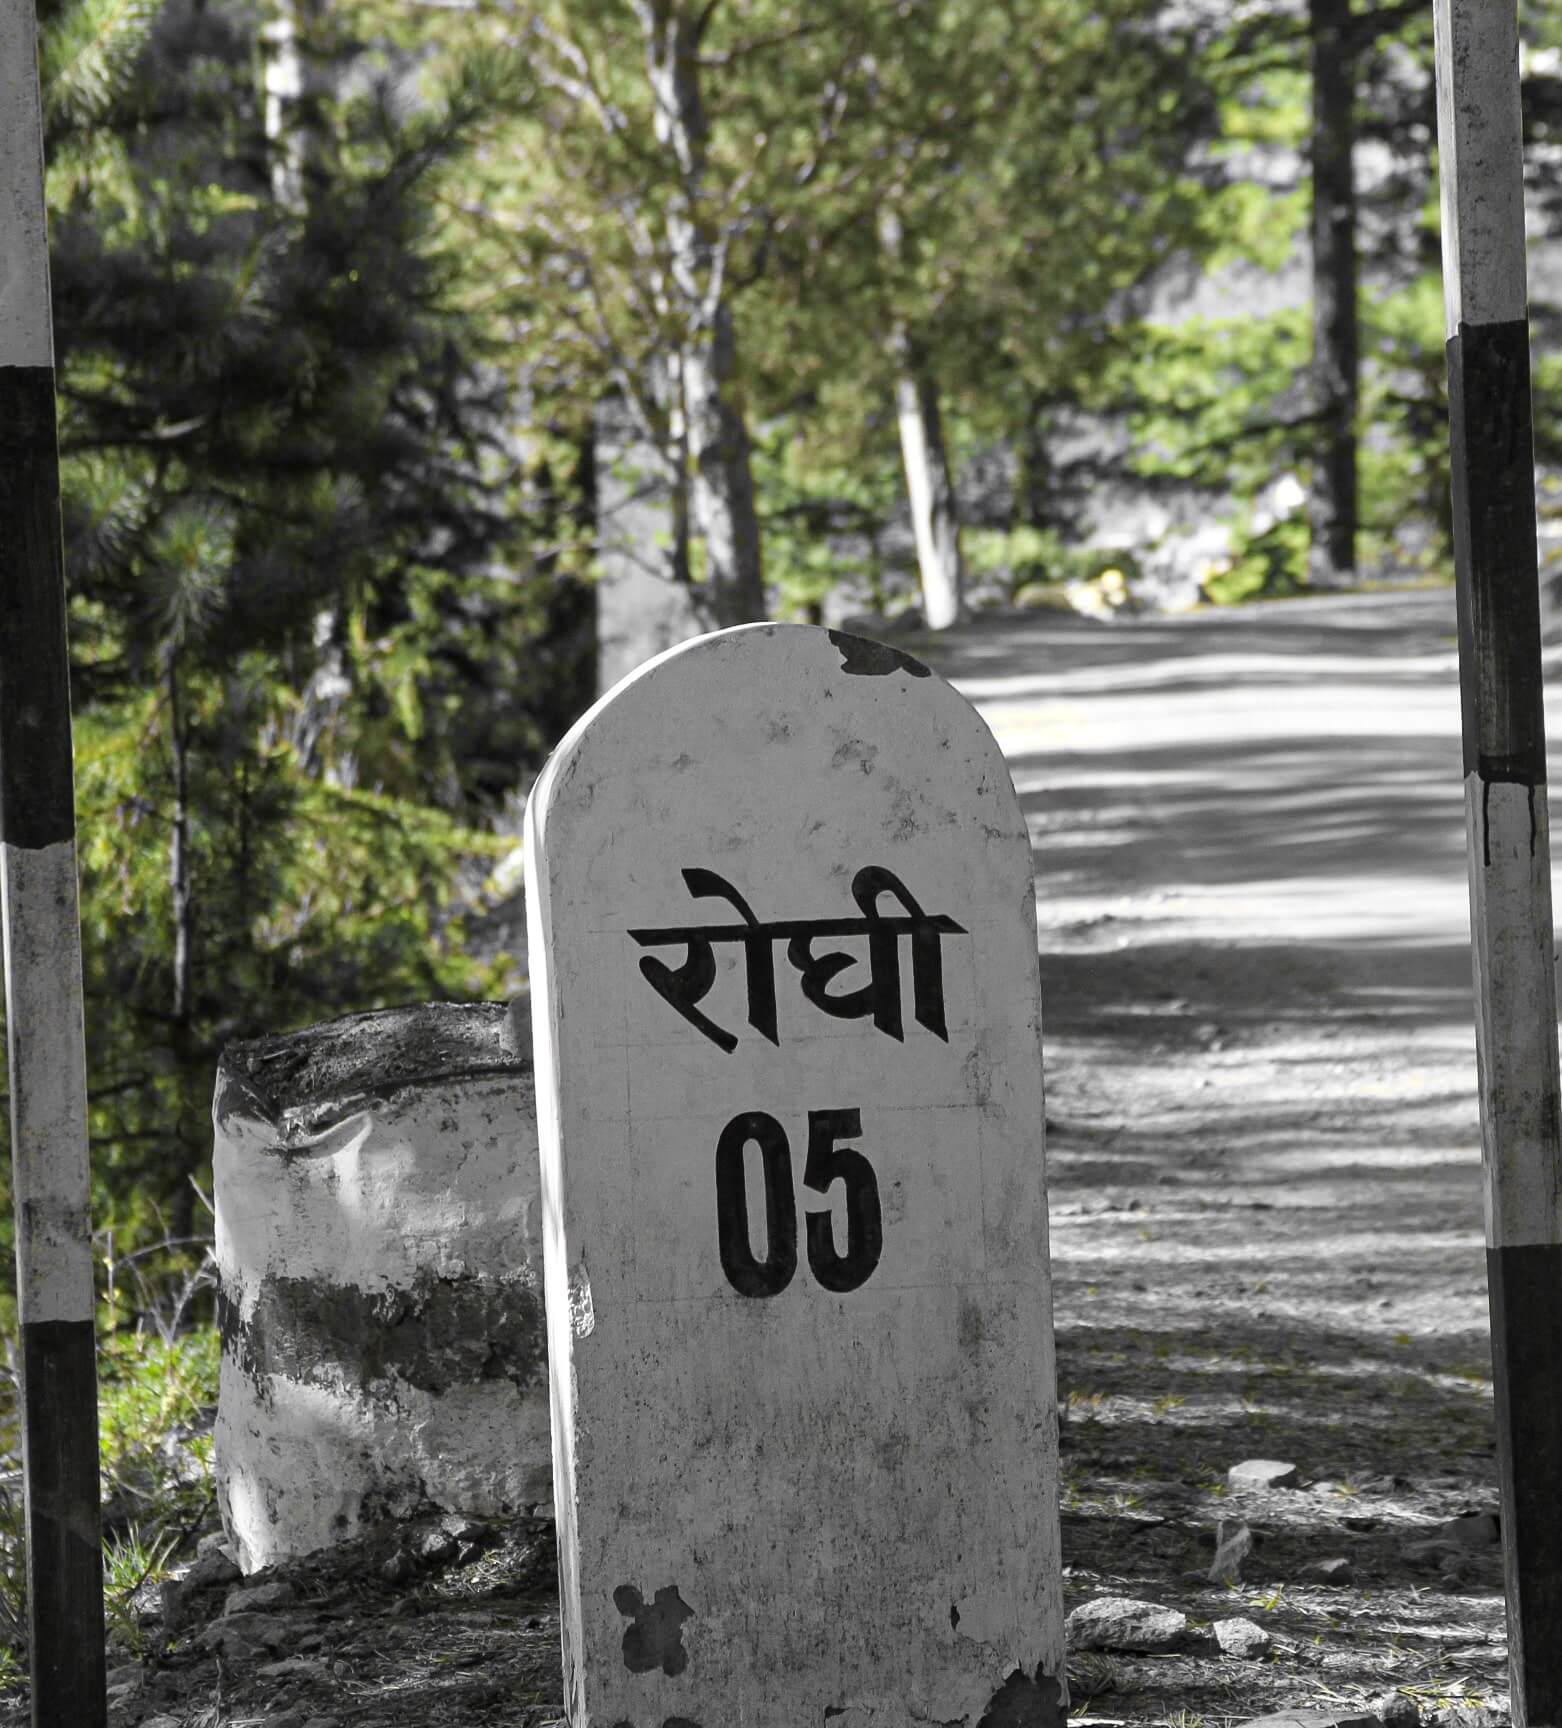 On the Roghi road in Kalpa